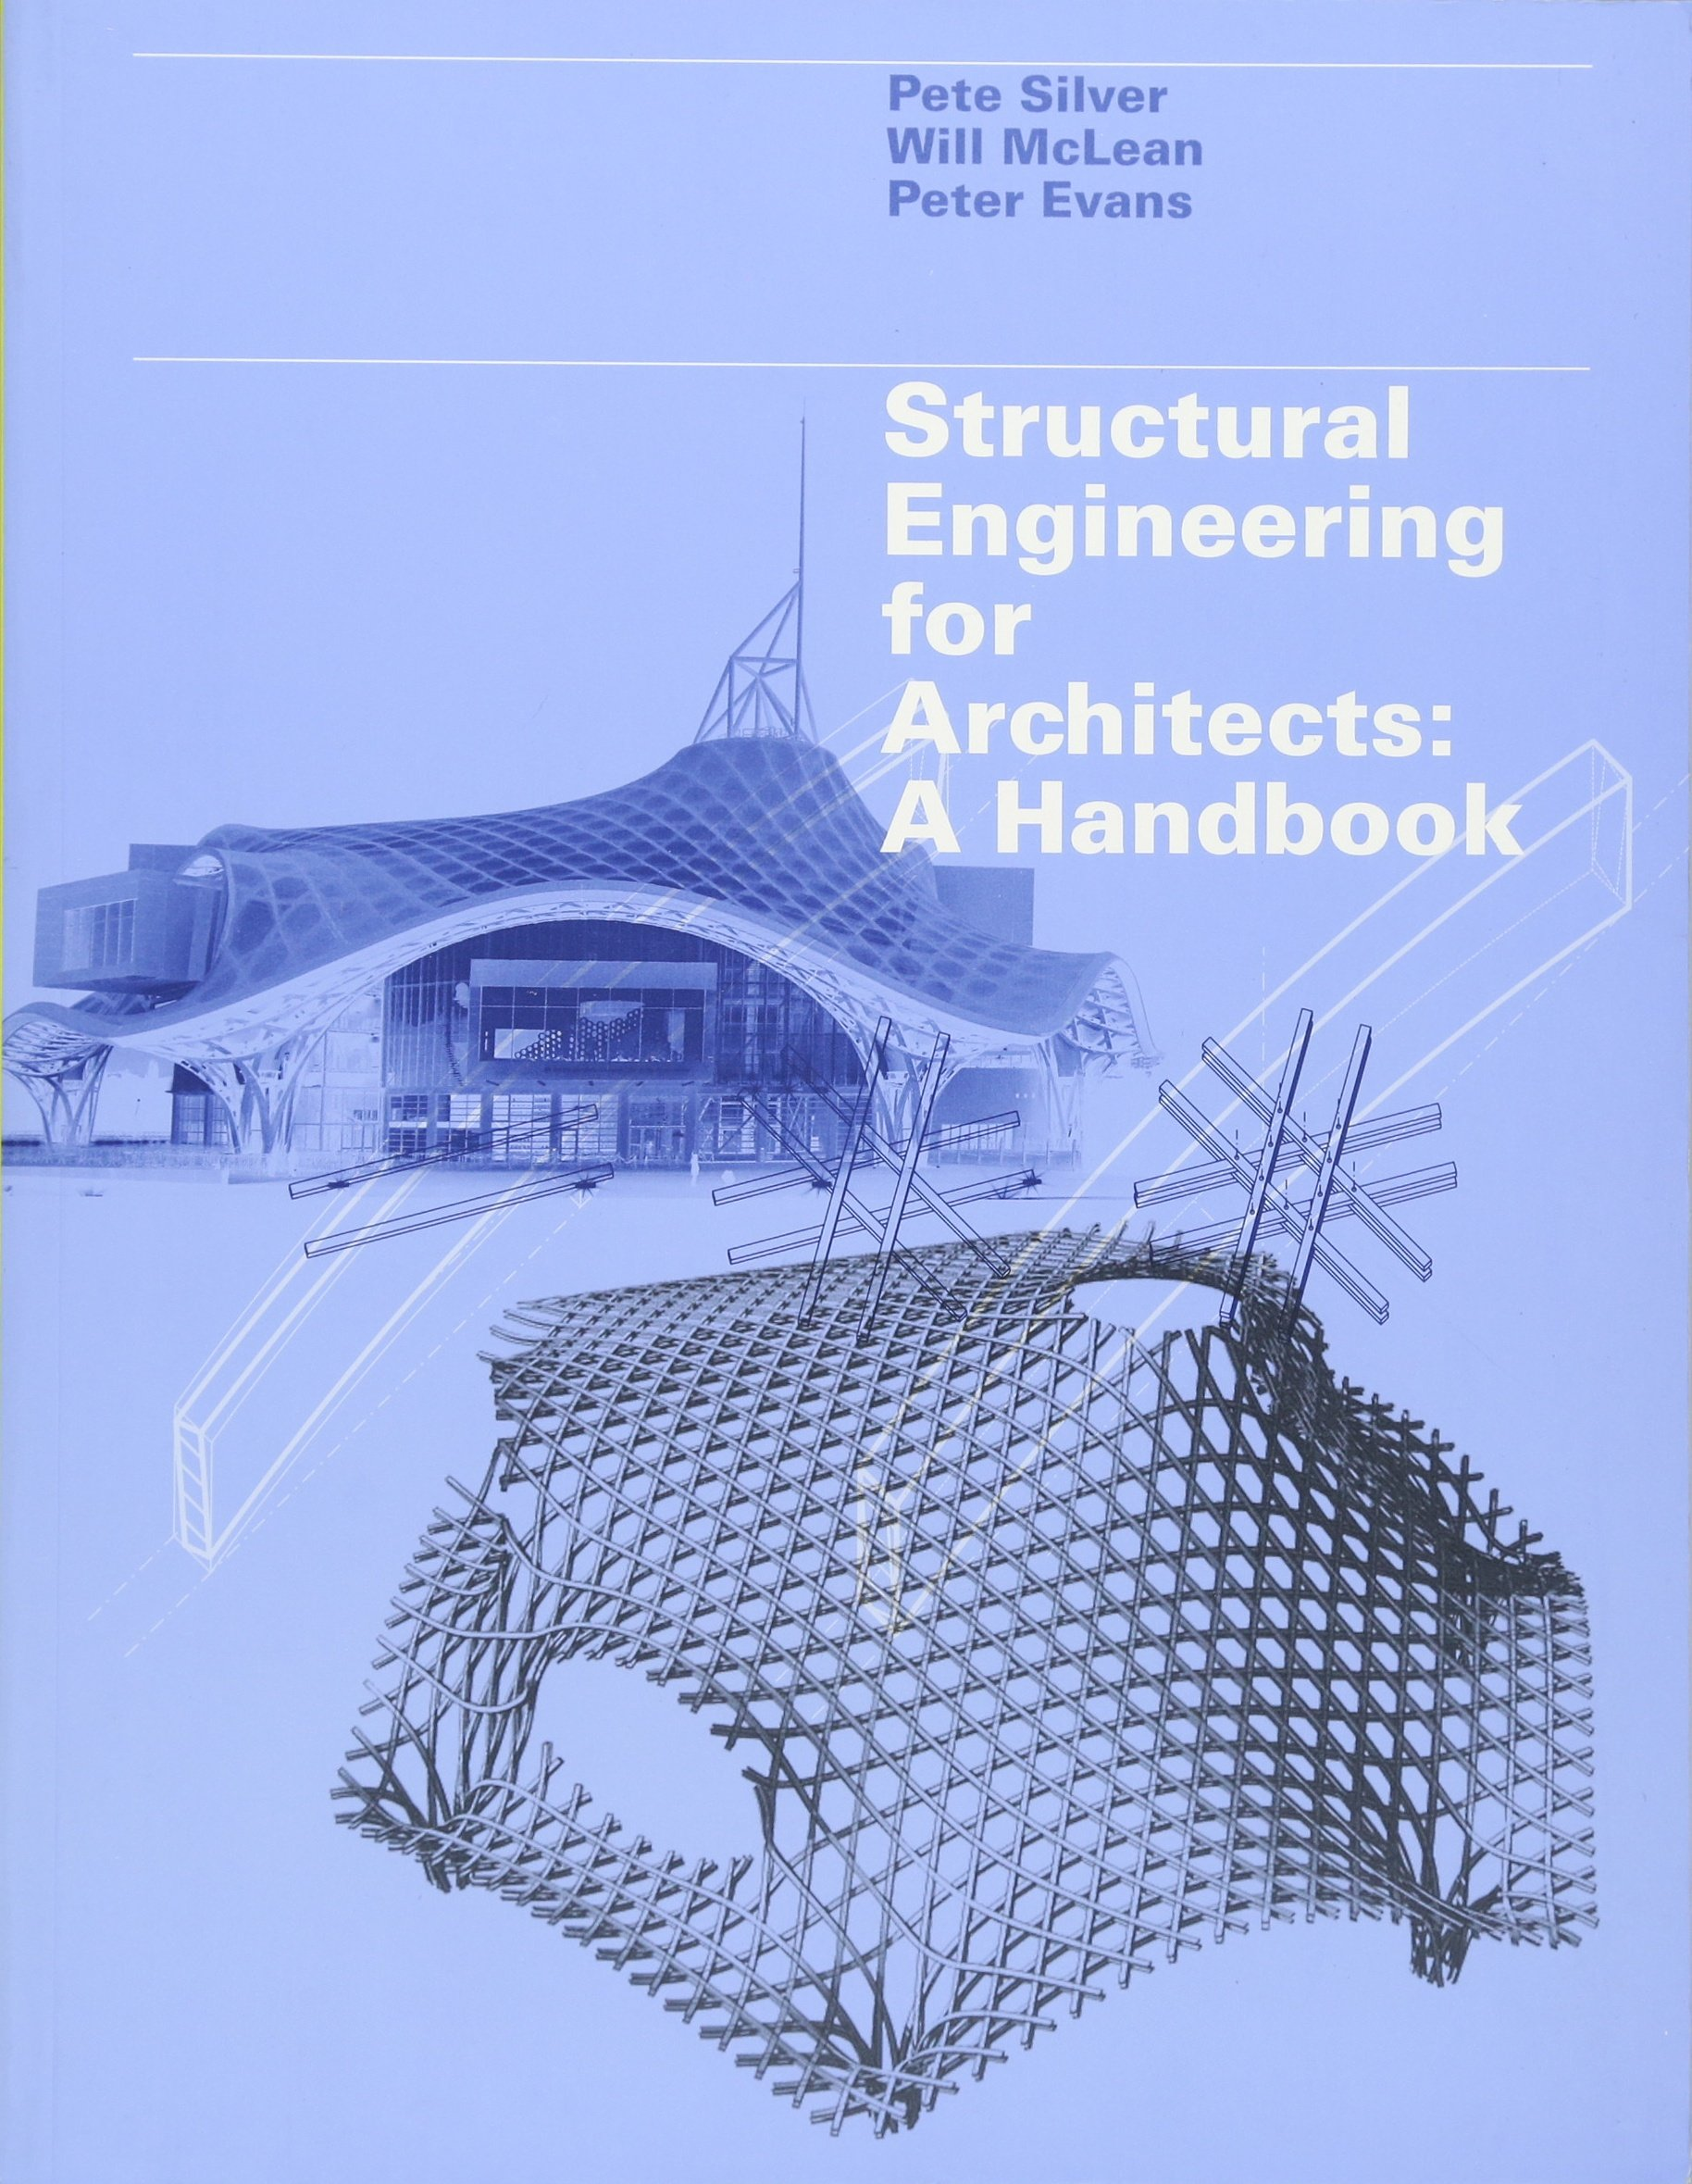 Structural engineering for architects : a handbook